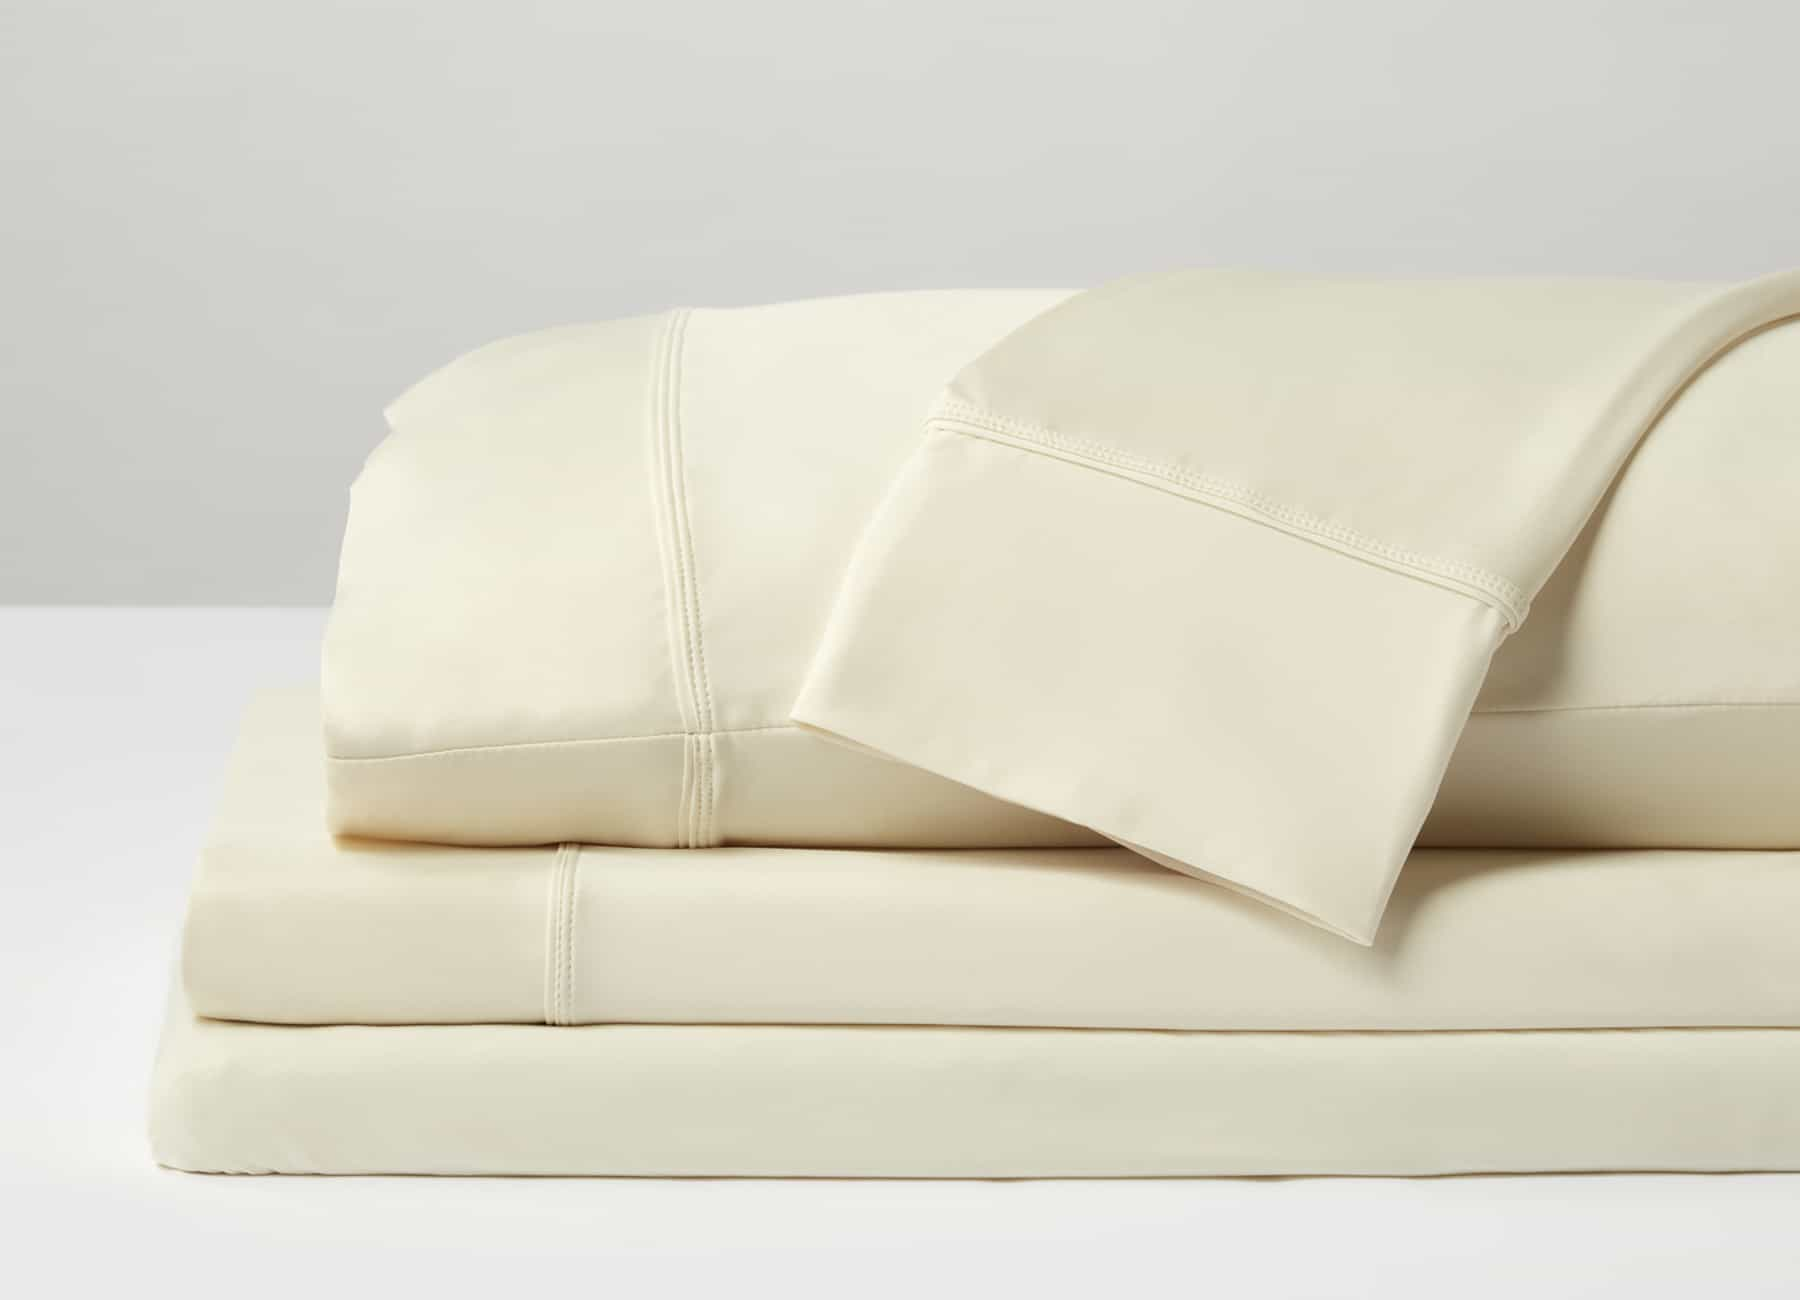 Original Performance Sheet Set Image Shown Folded and Stacked in Ecru #choose-your-color_ecru